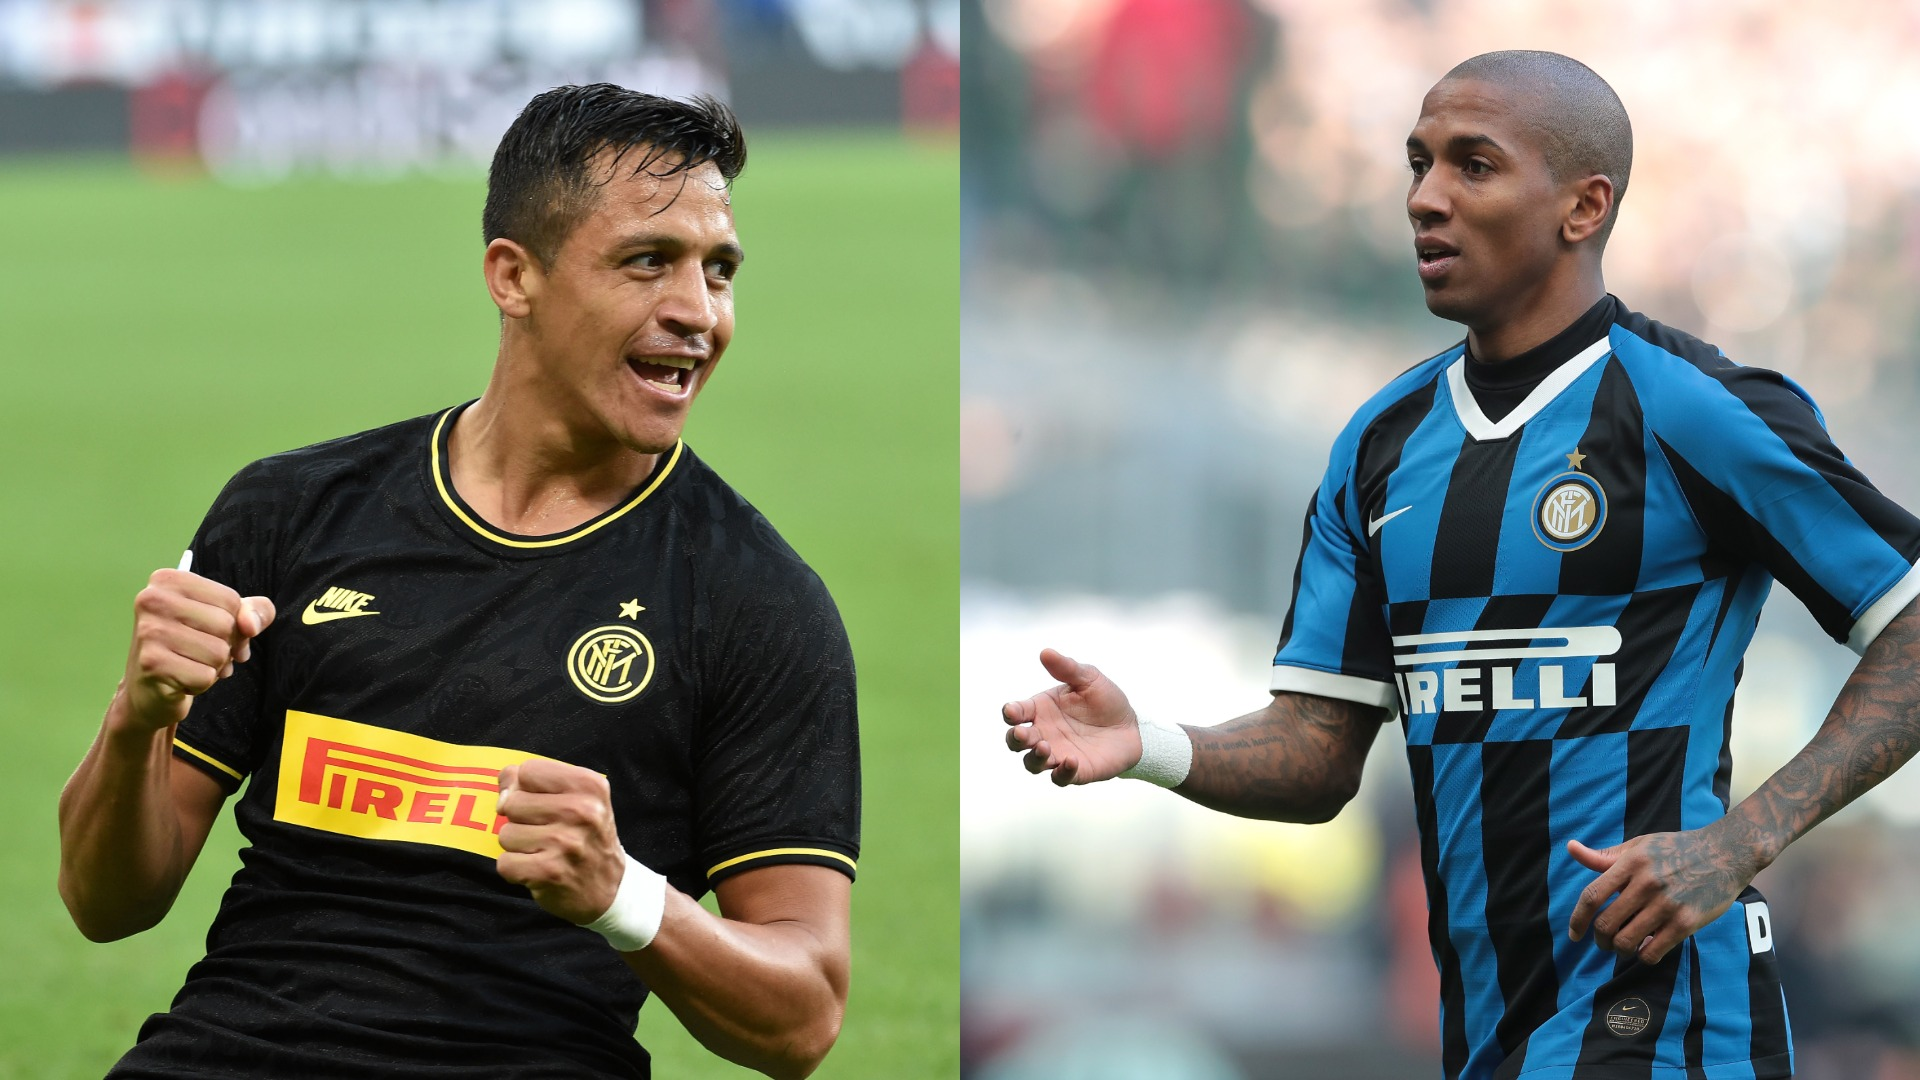 Inter triggered Young extension and open to Sanchez staying, sporting director confirms